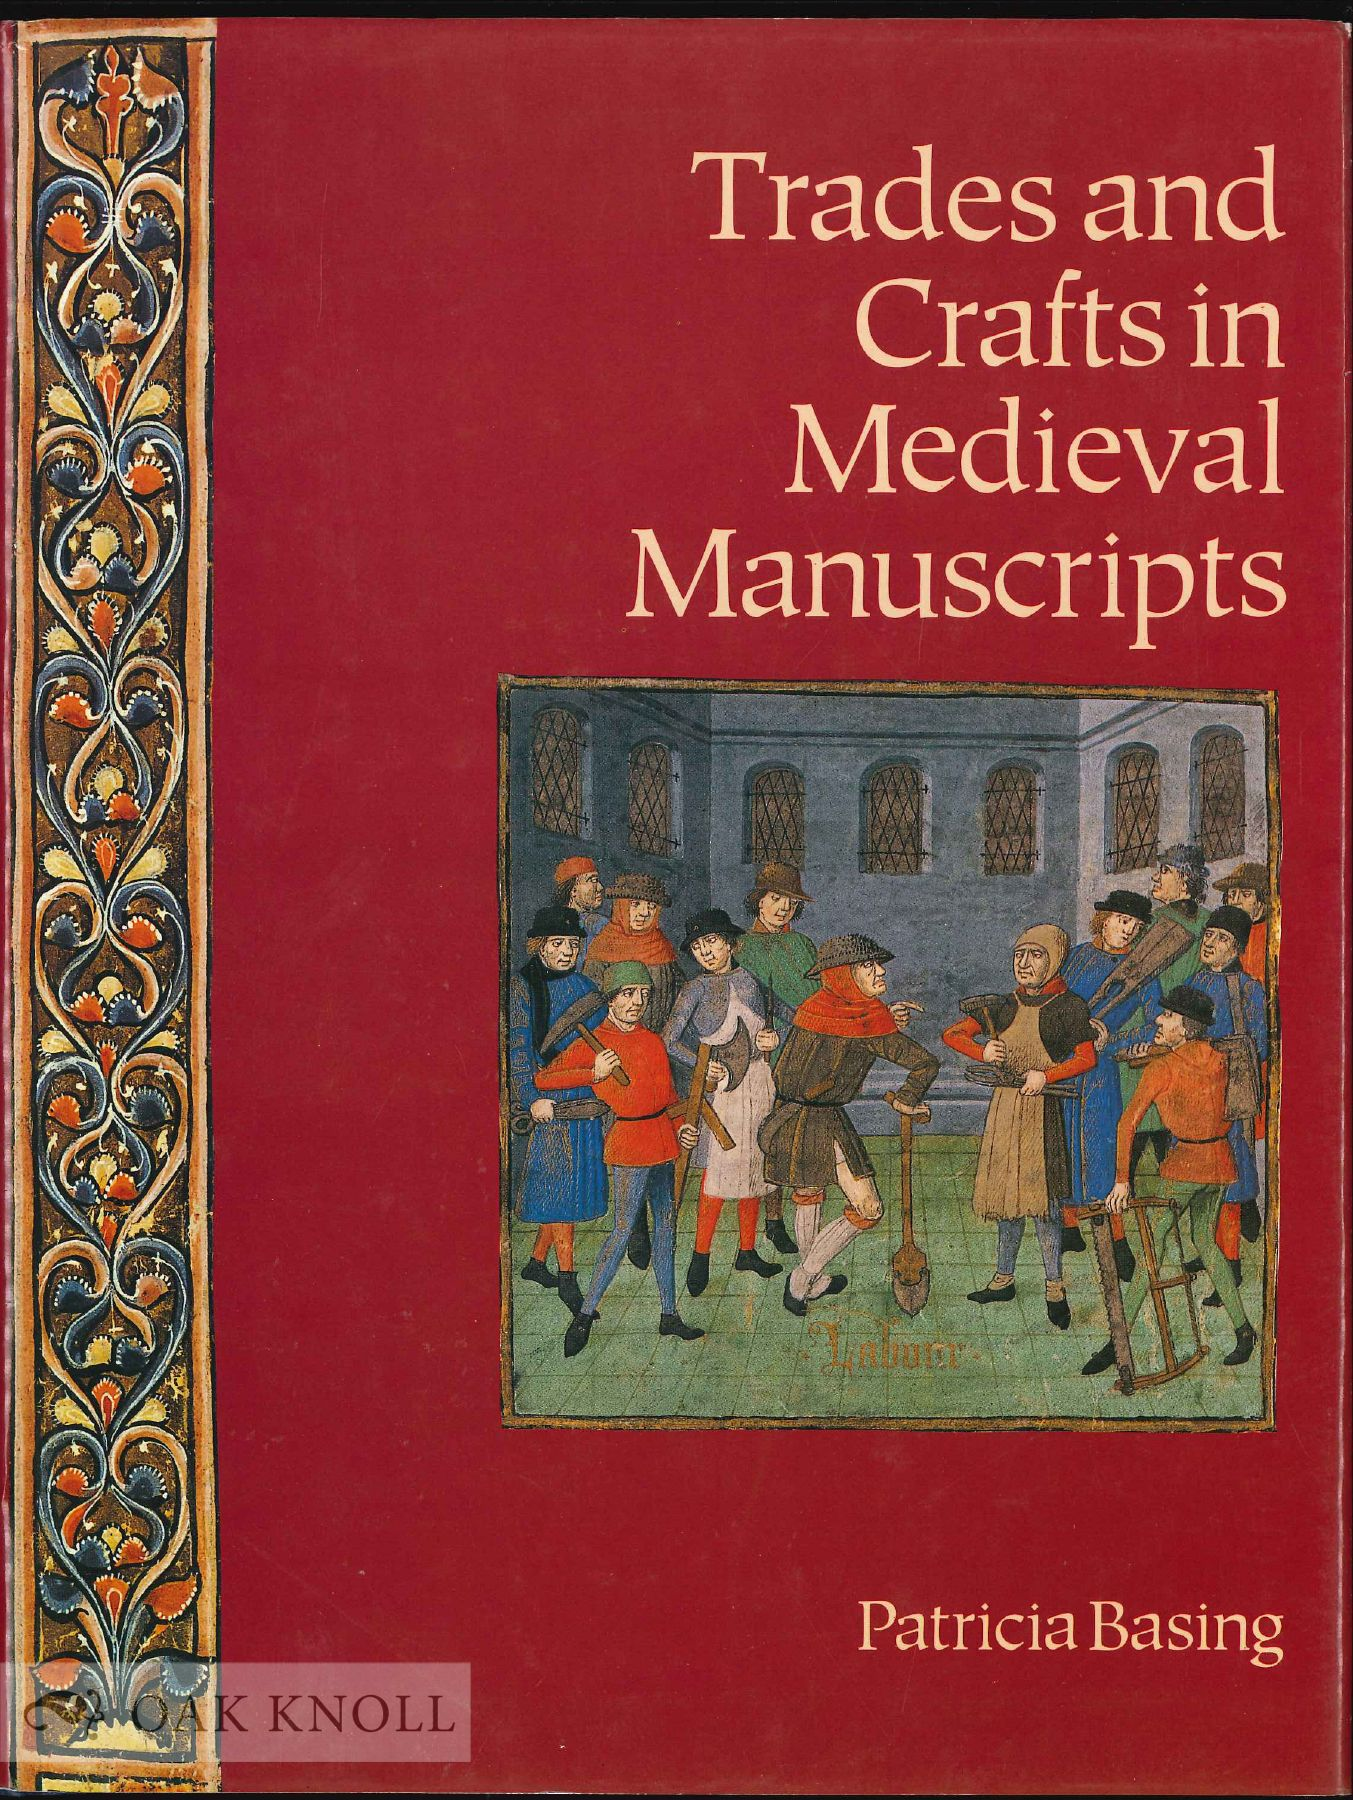 TRADES AND CRAFTS IN MEDIEVAL MANUSCRIPTS by Patricia Basing on Oak Knoll